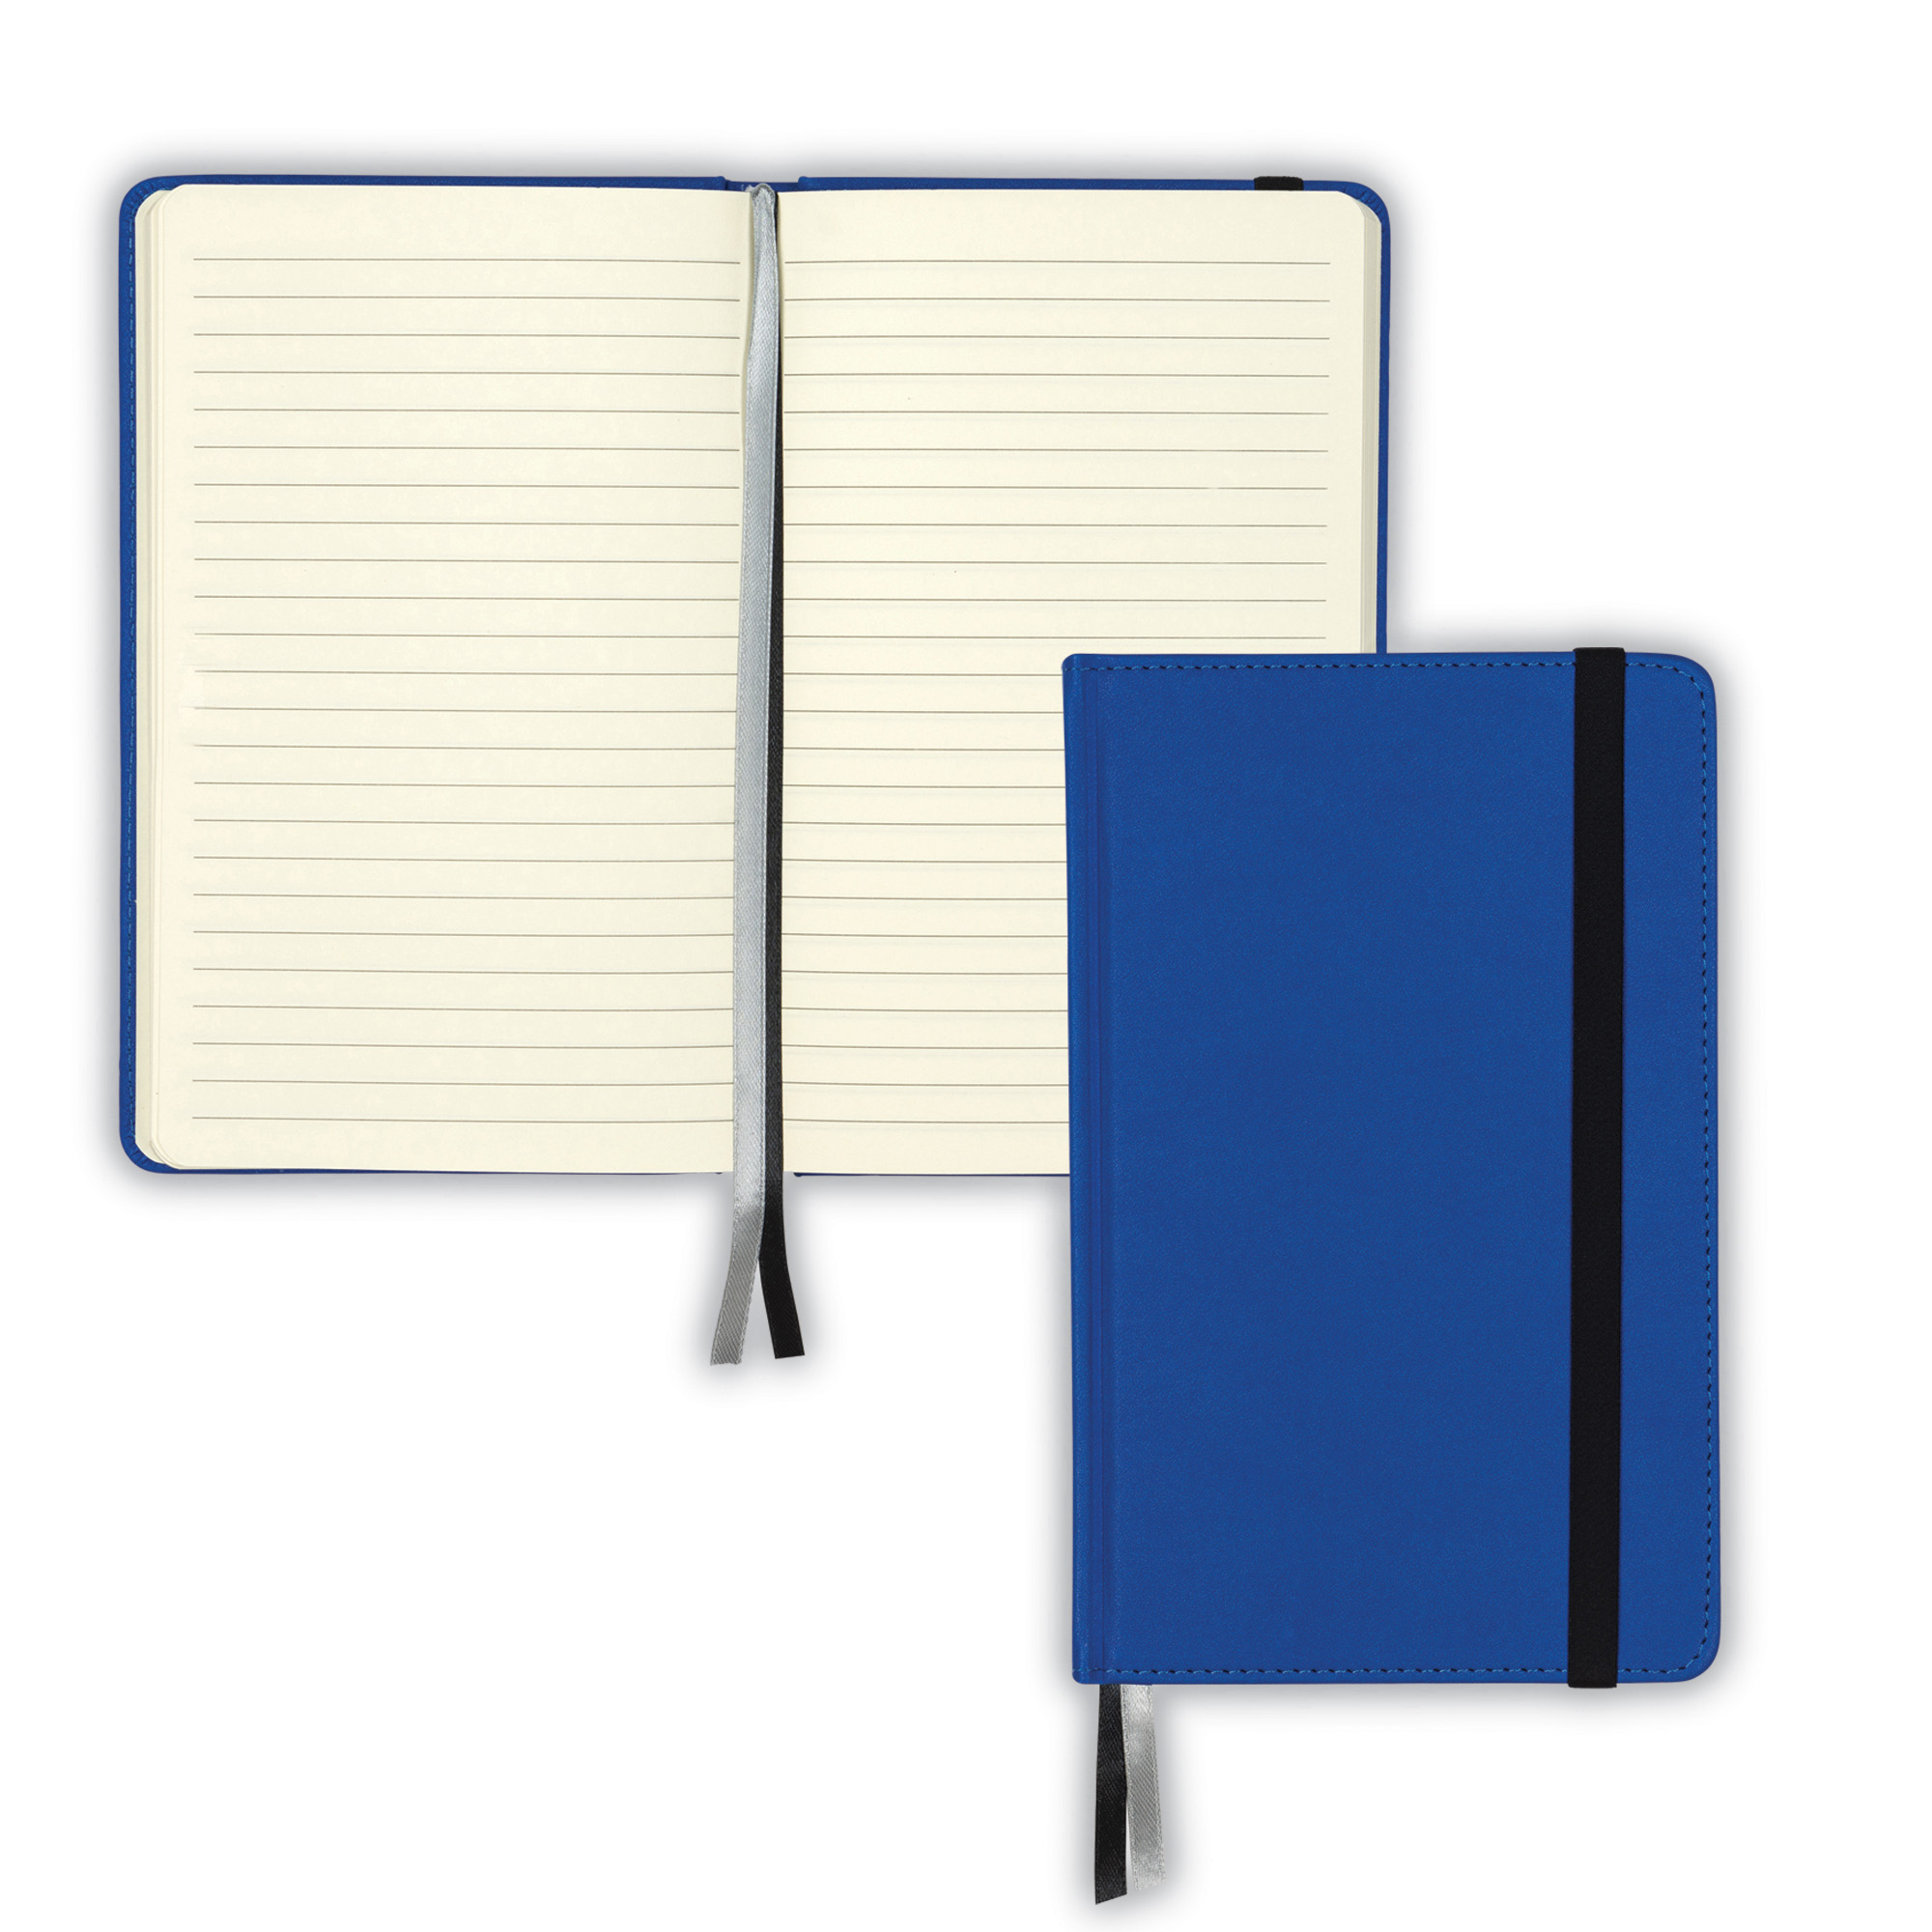 samsill journal, samsill notebook, samsill, journal, notebook, blue journal, blue notebook